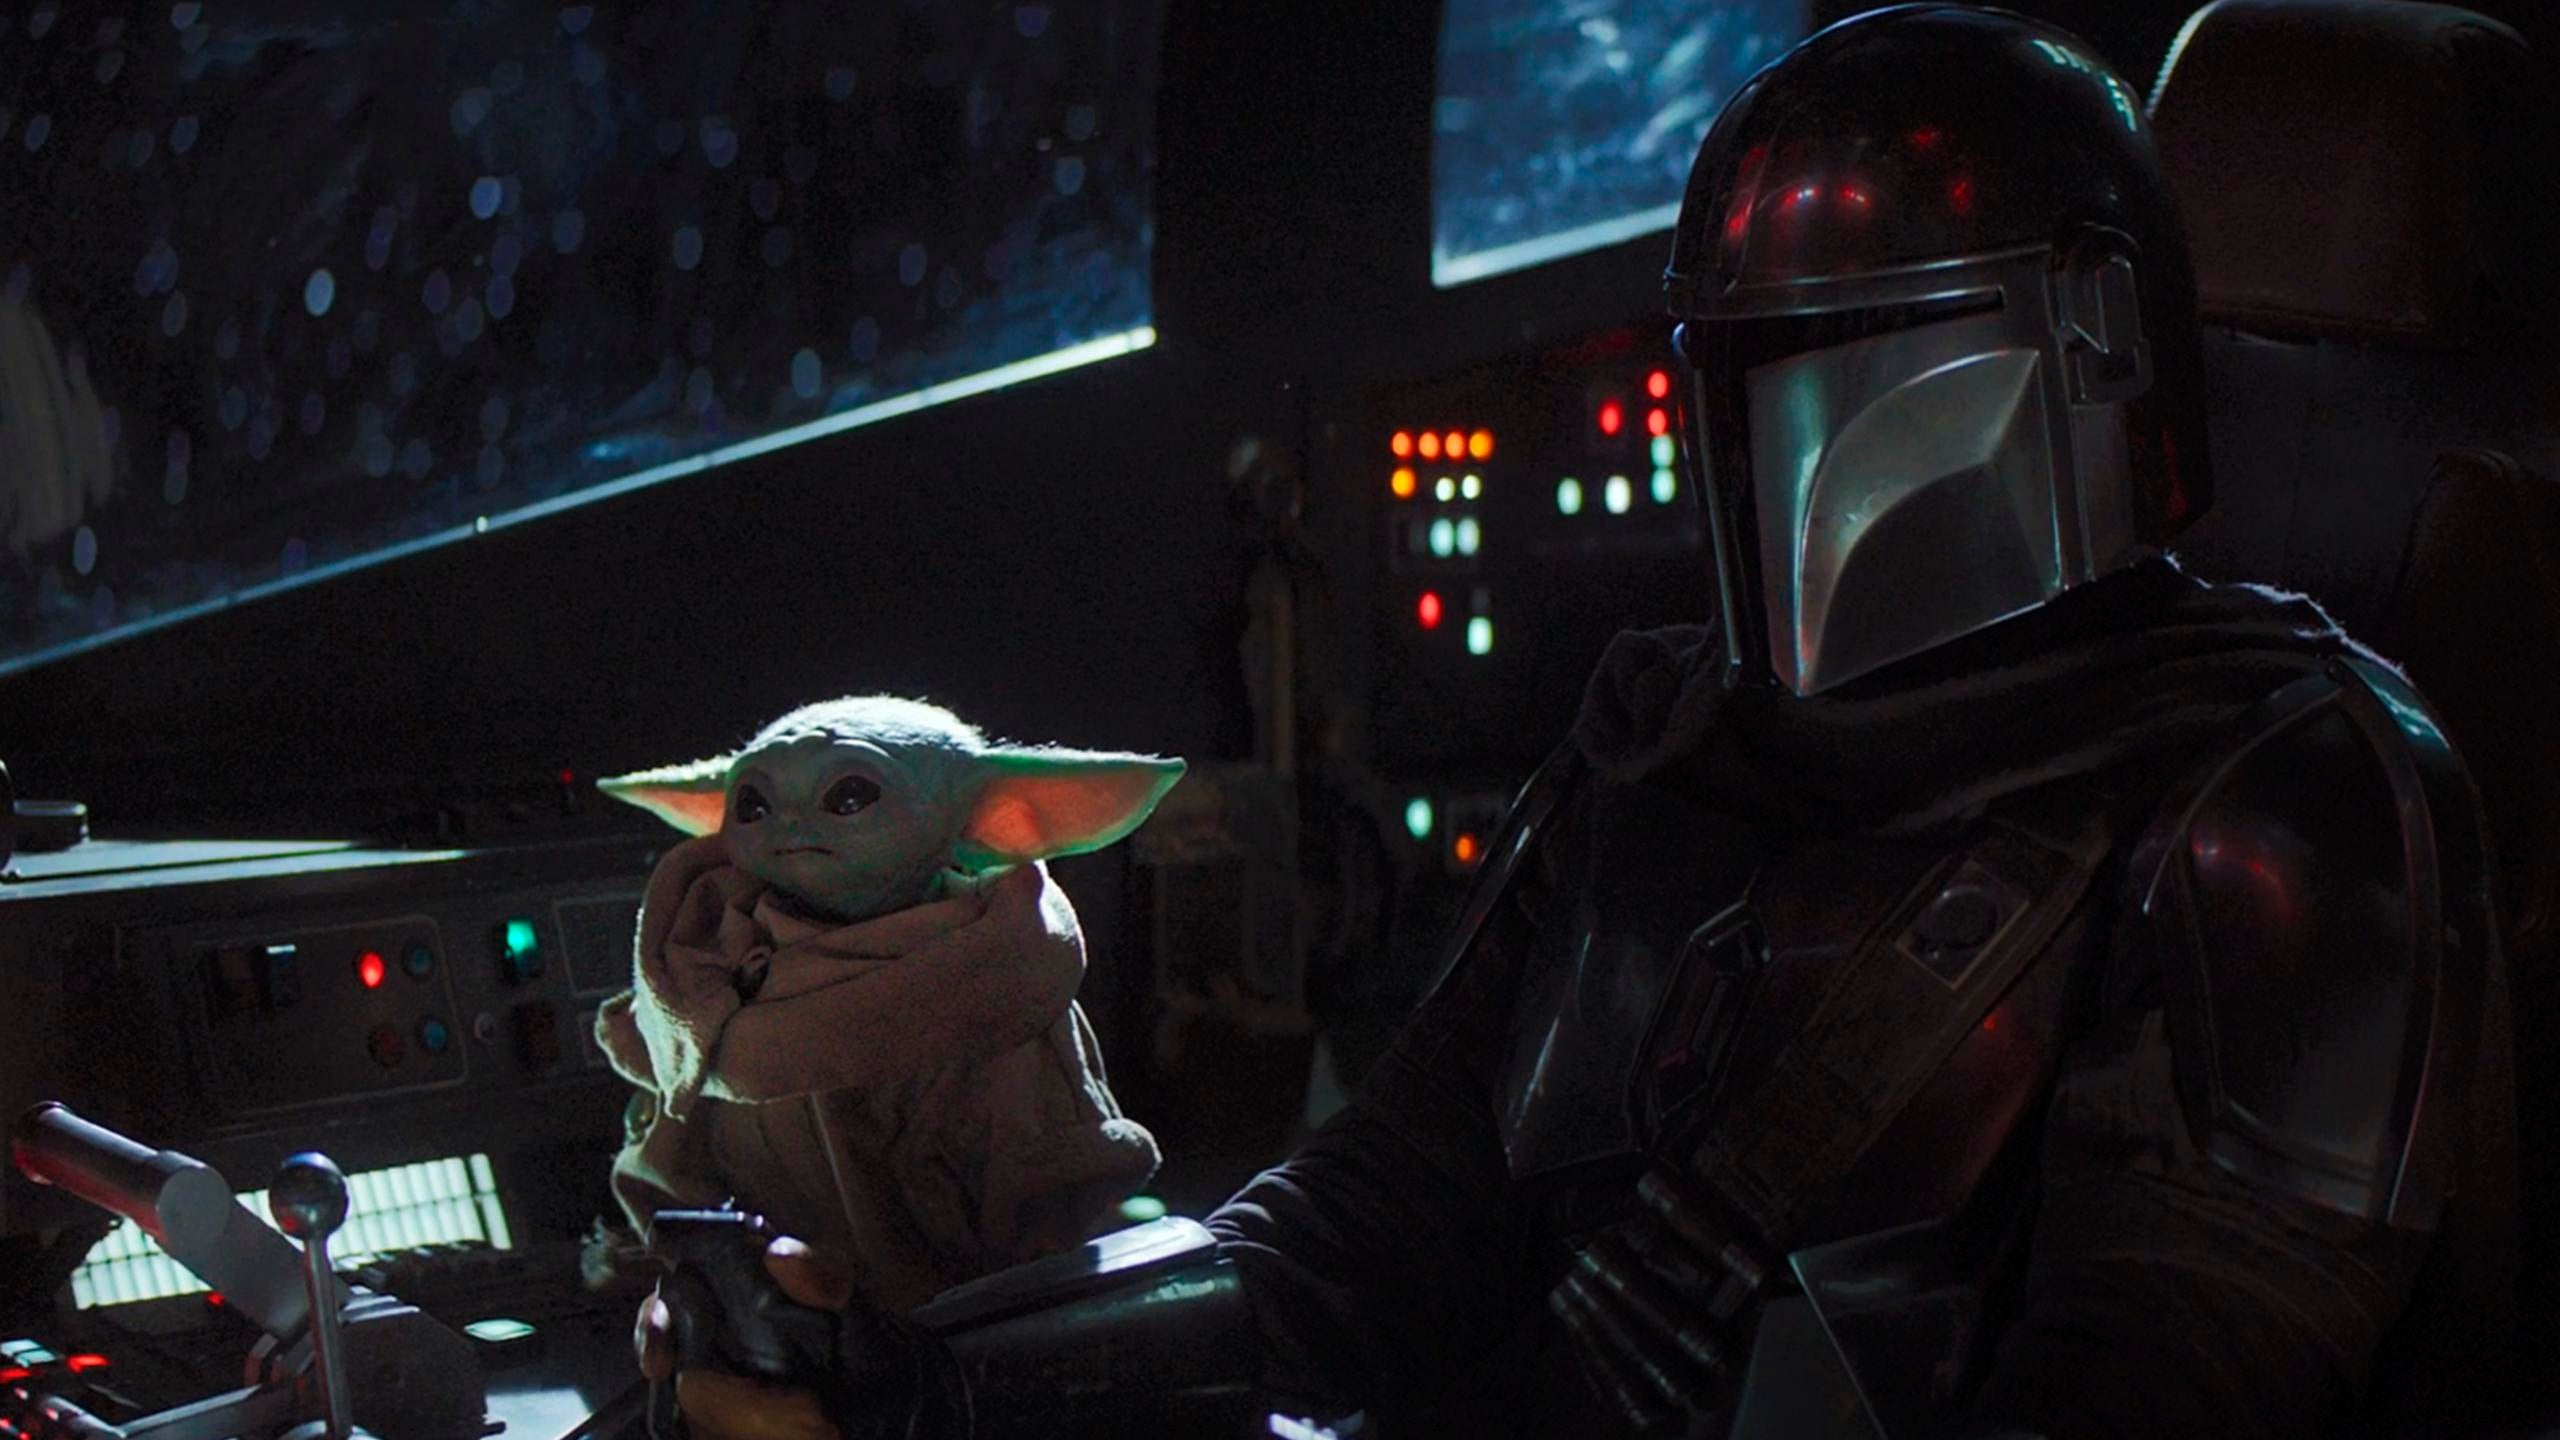 Mandalorian And Baby Yoda Wallpaper 4k 2858441 Hd Wallpaper Backgrounds Download